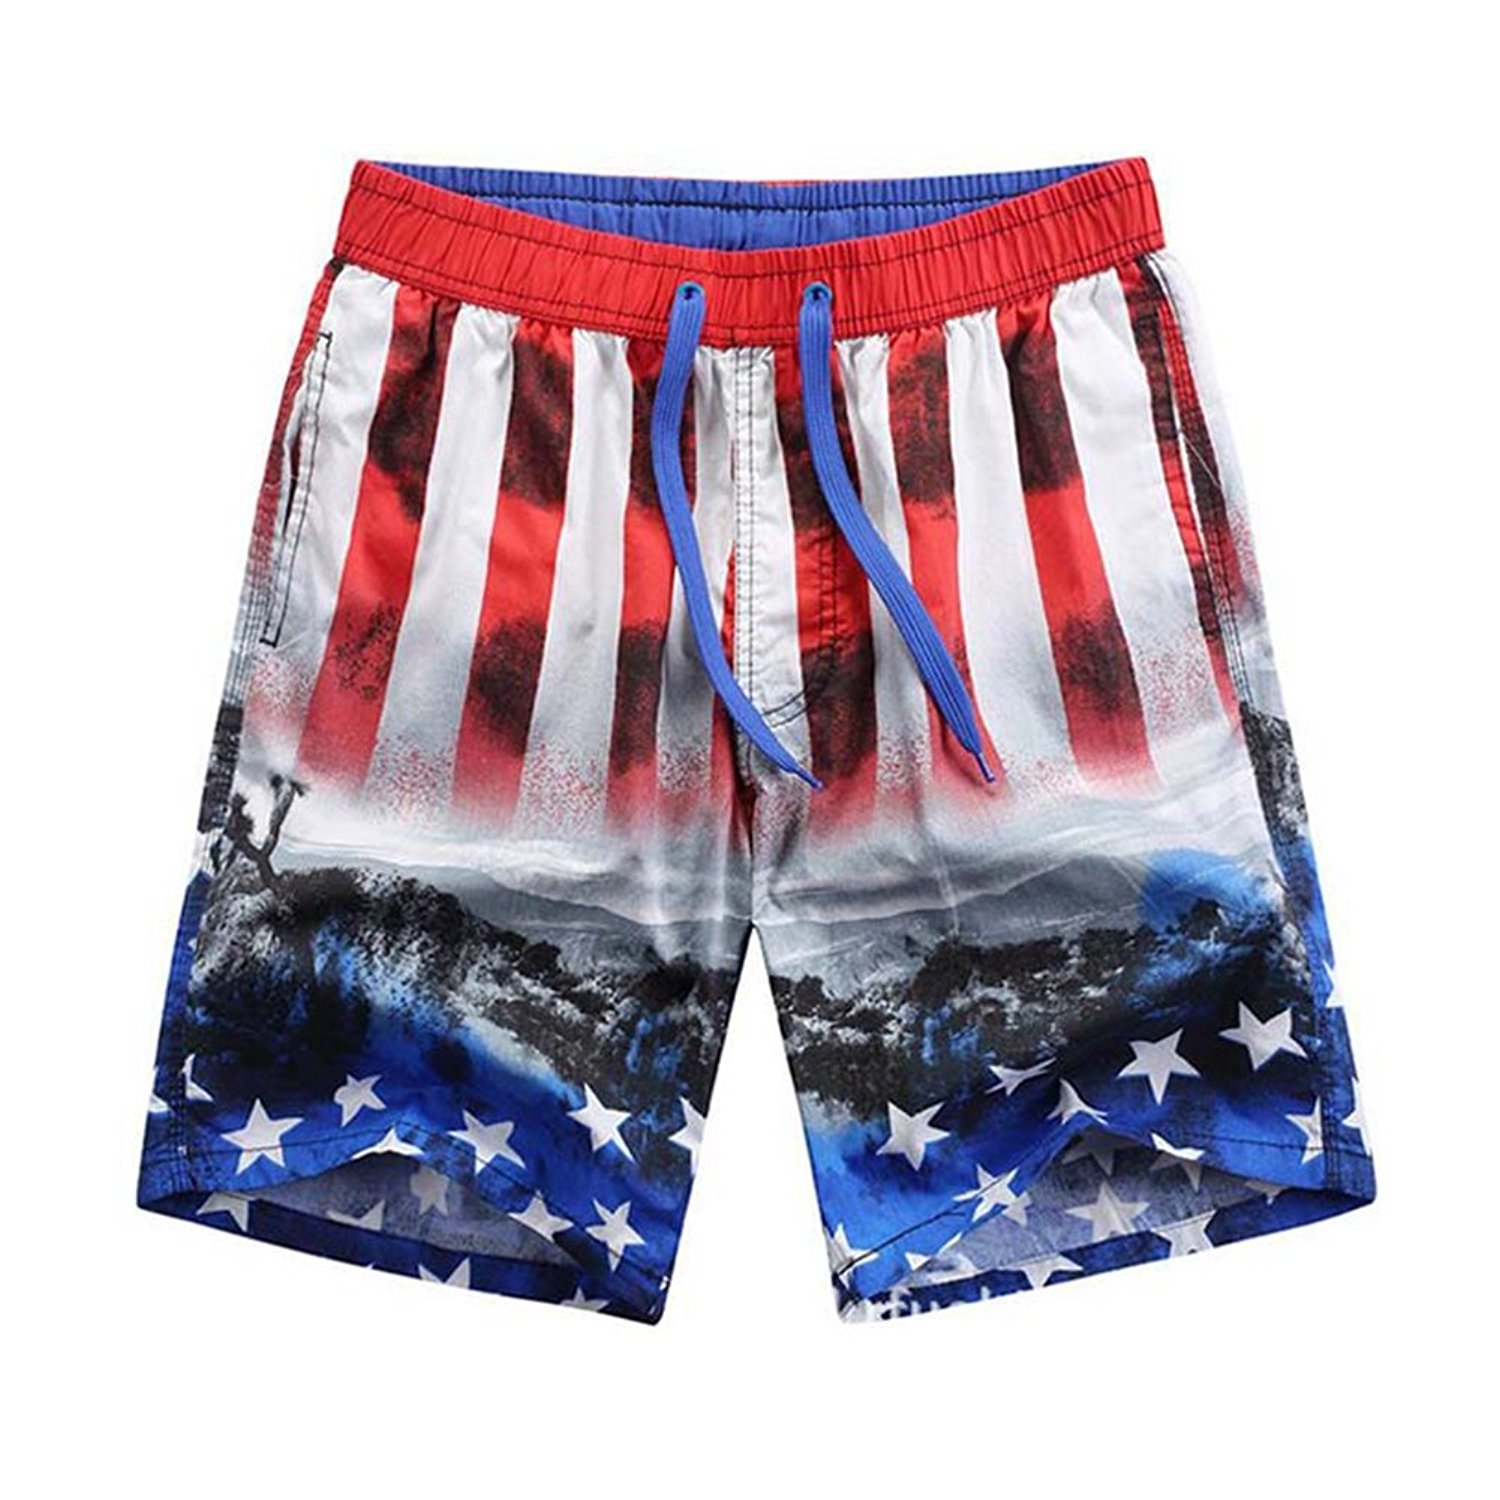 5eeafa5121 OUOK Men's Quick Dry Beach Board Shorts Hot New Summer Short Homme Plus  Size Swimming Shorts